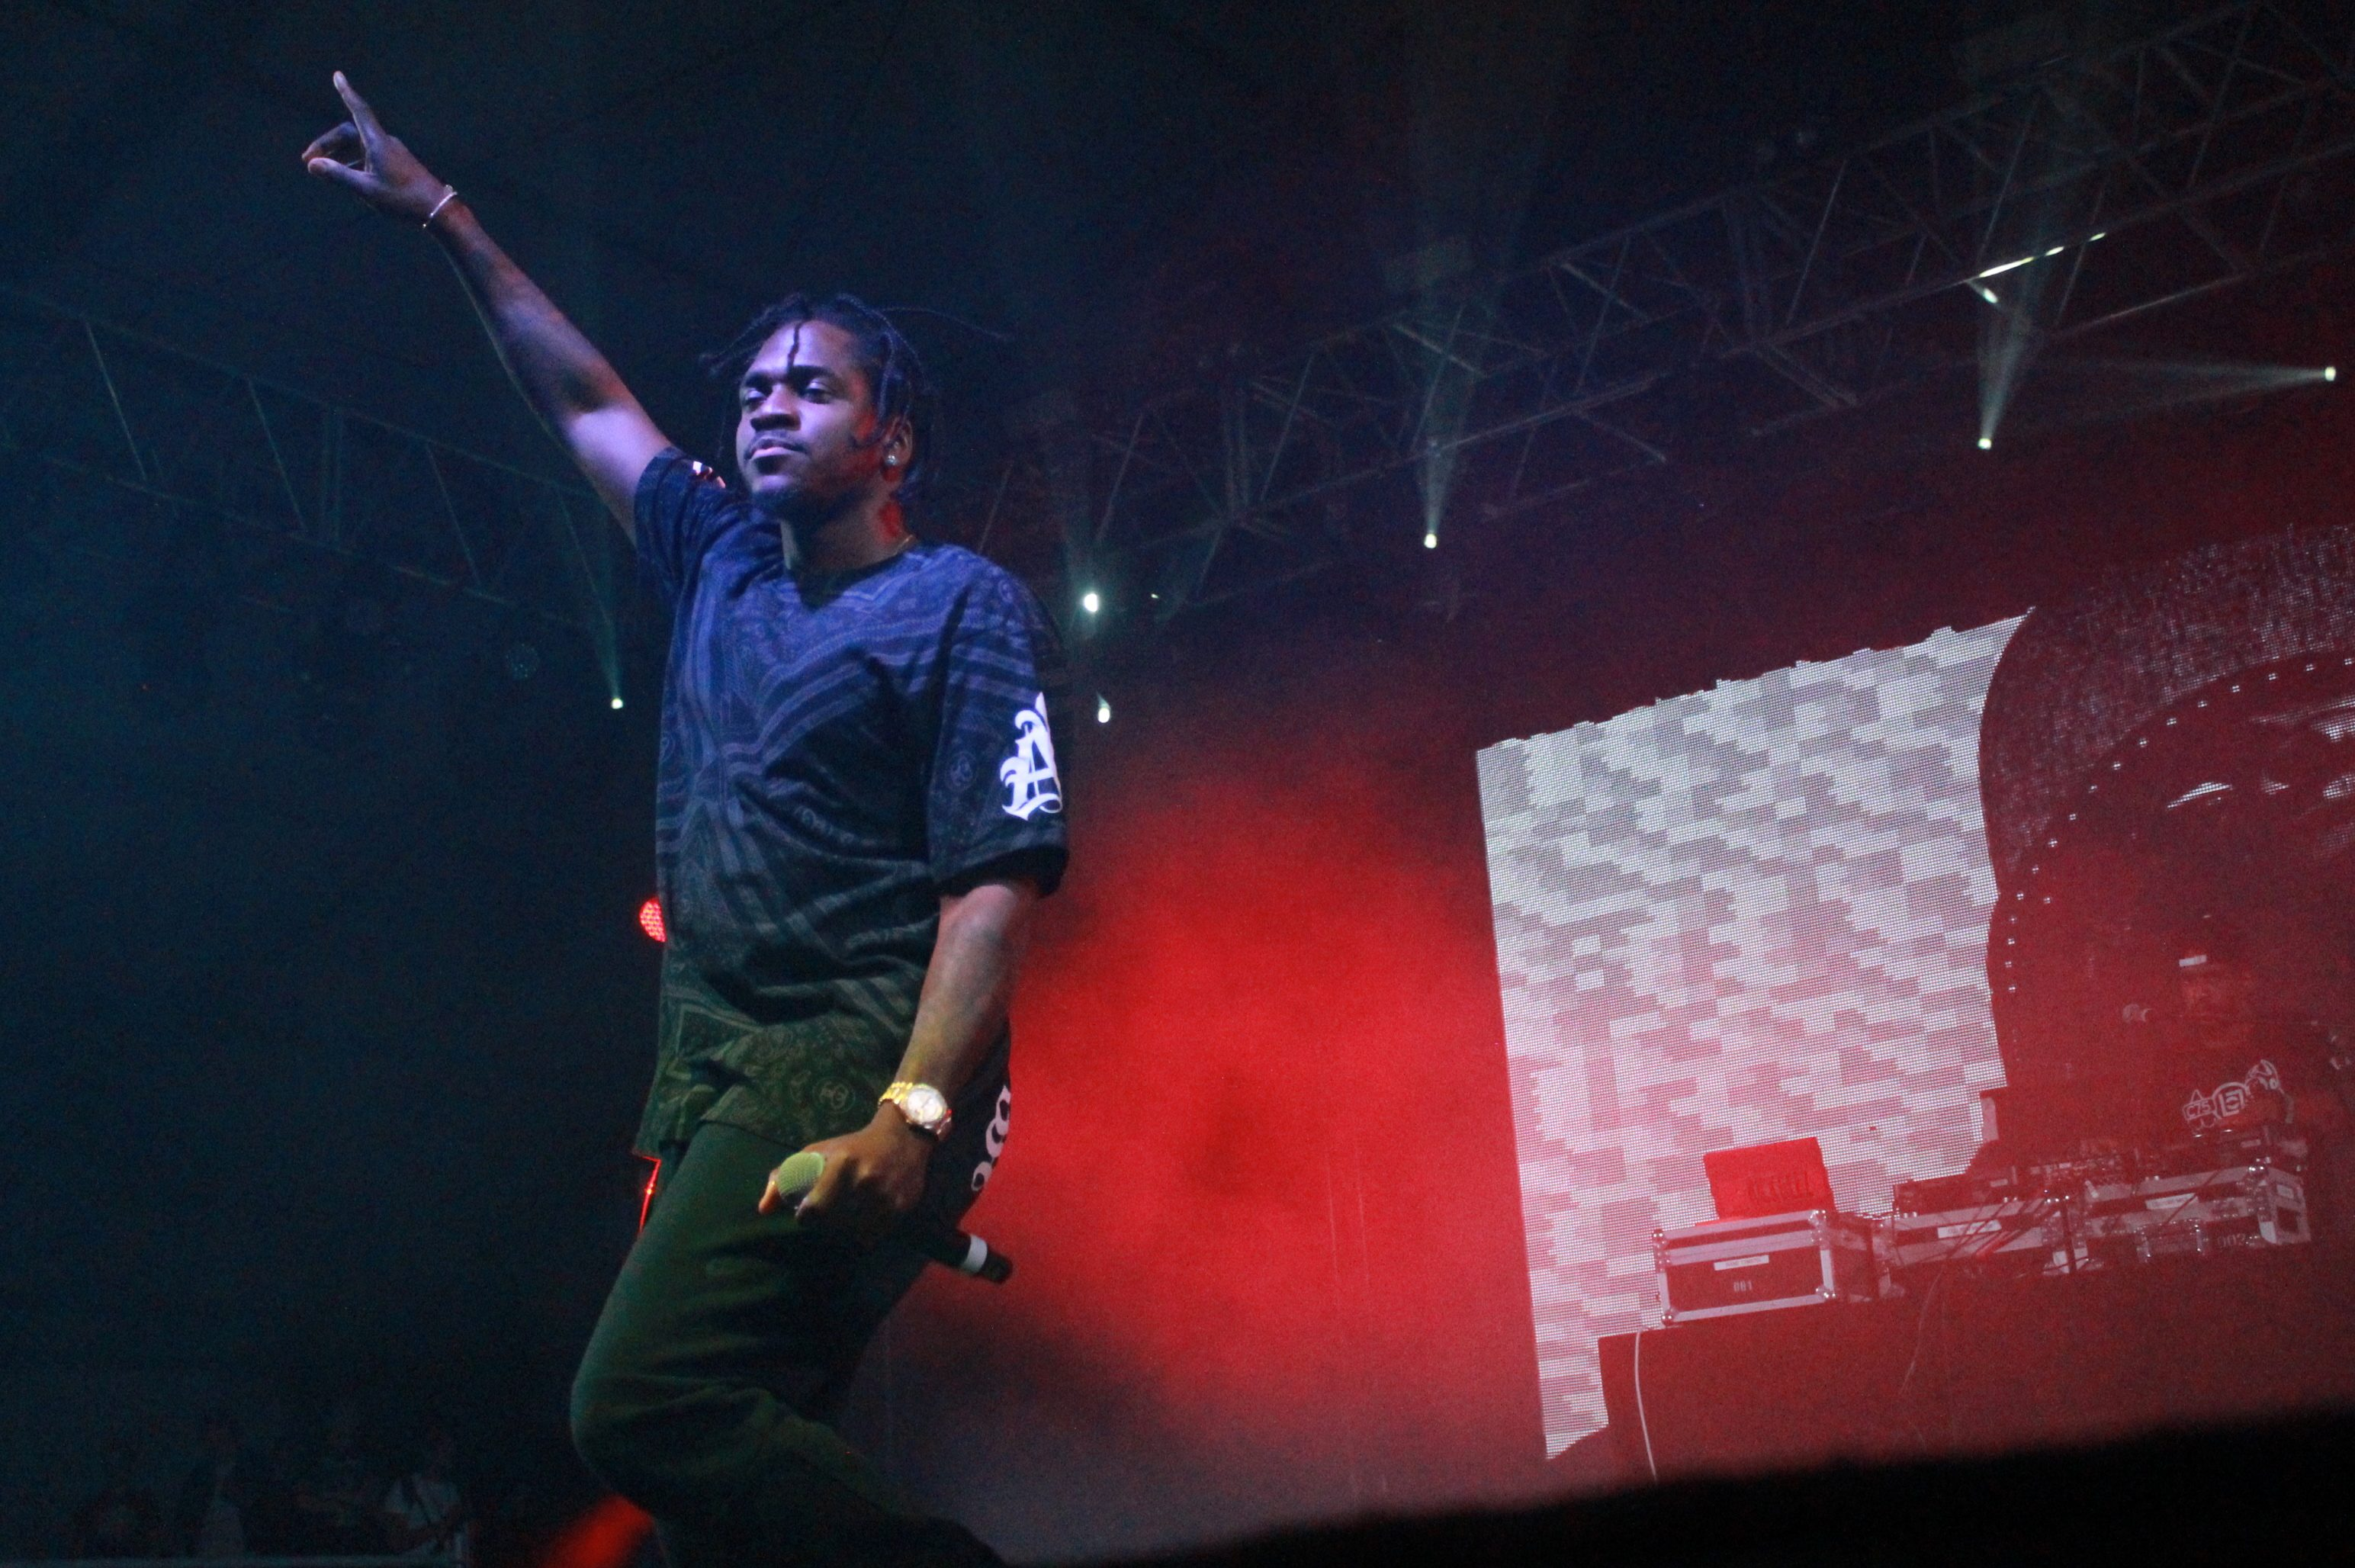 Pusha T @ The Fillmore 11/23